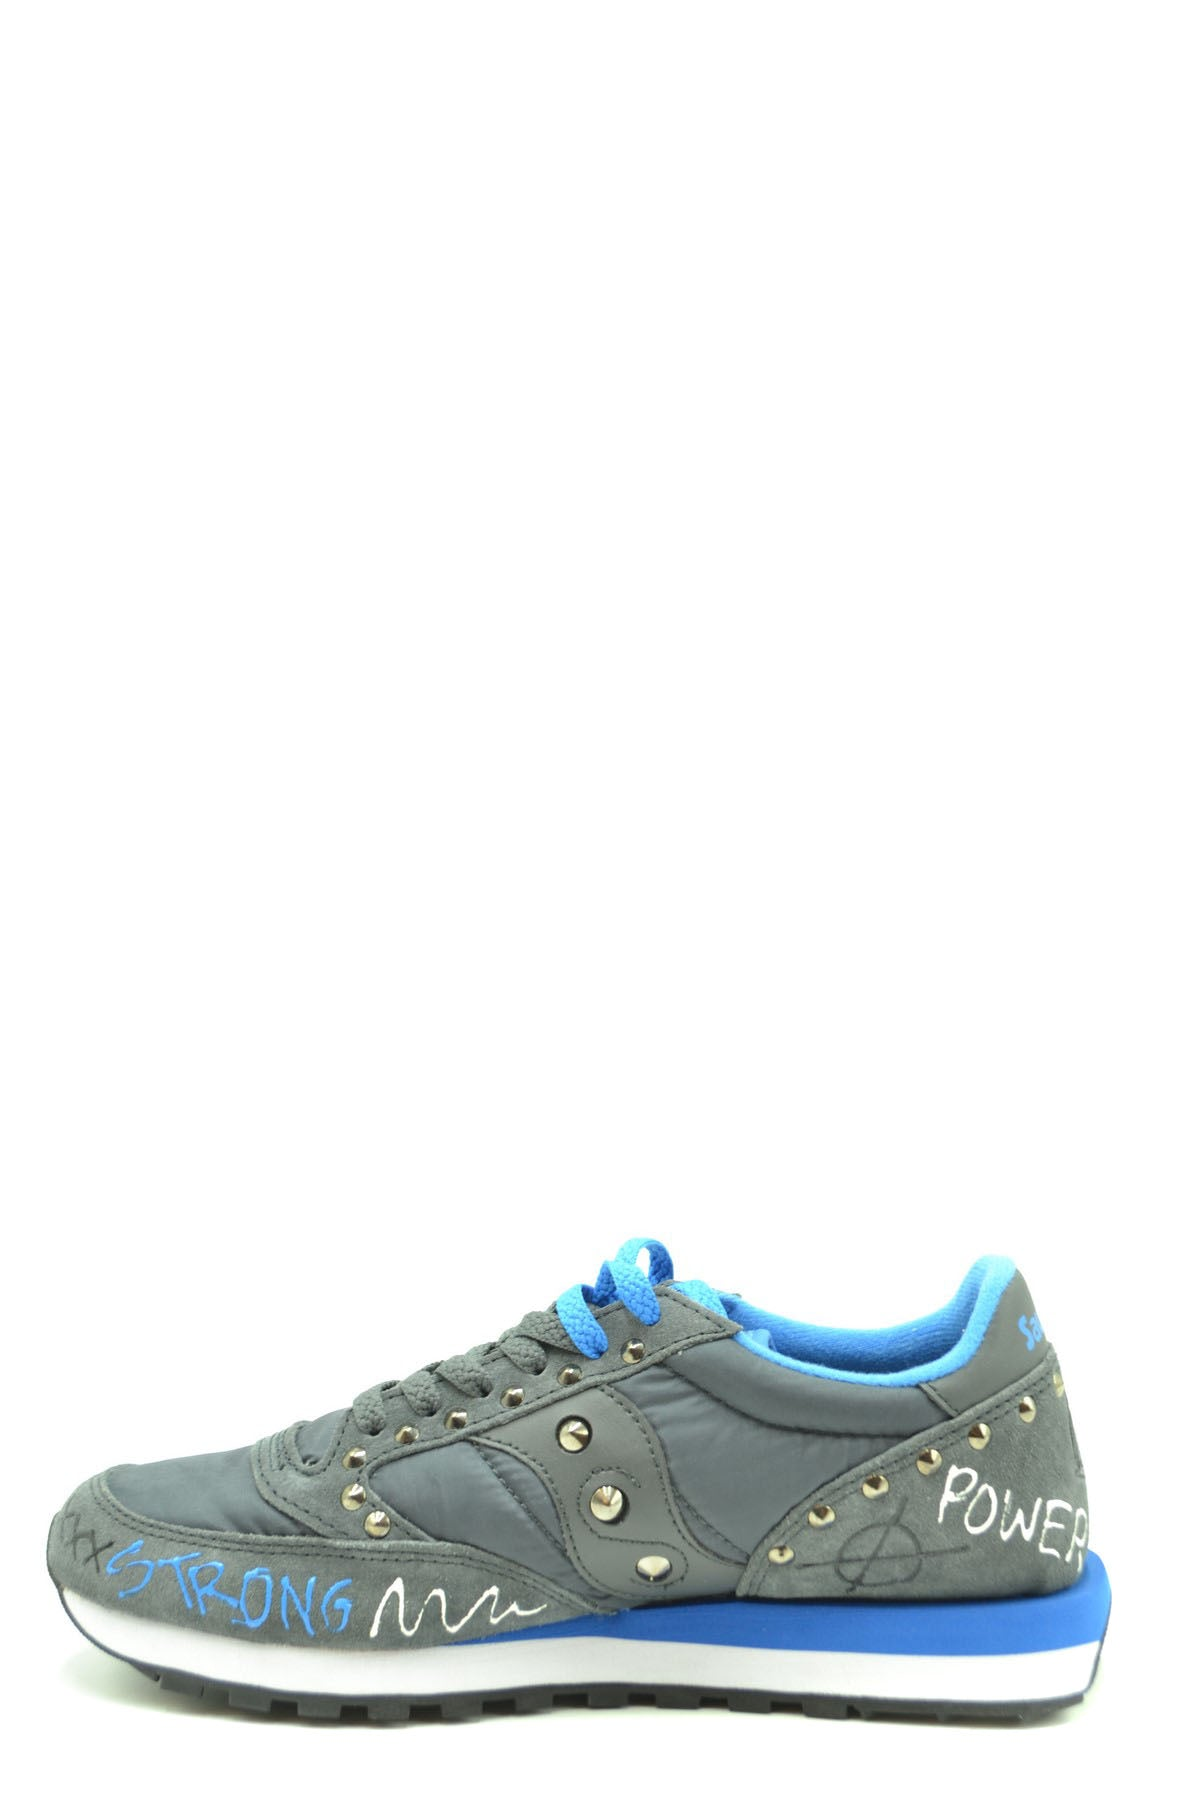 Shoes Saucony-Sports & Entertainment - Sneakers-Product Details Year: 2020Composition: Nylon 100%Size: EuGender: ManMade In: ChinaSeason: Fall / WinterType Of Accessory: ShoesMain Color: Dark GrayTerms: New With LabelManufacturer Part Number: 2044-264-Keyomi-Sook